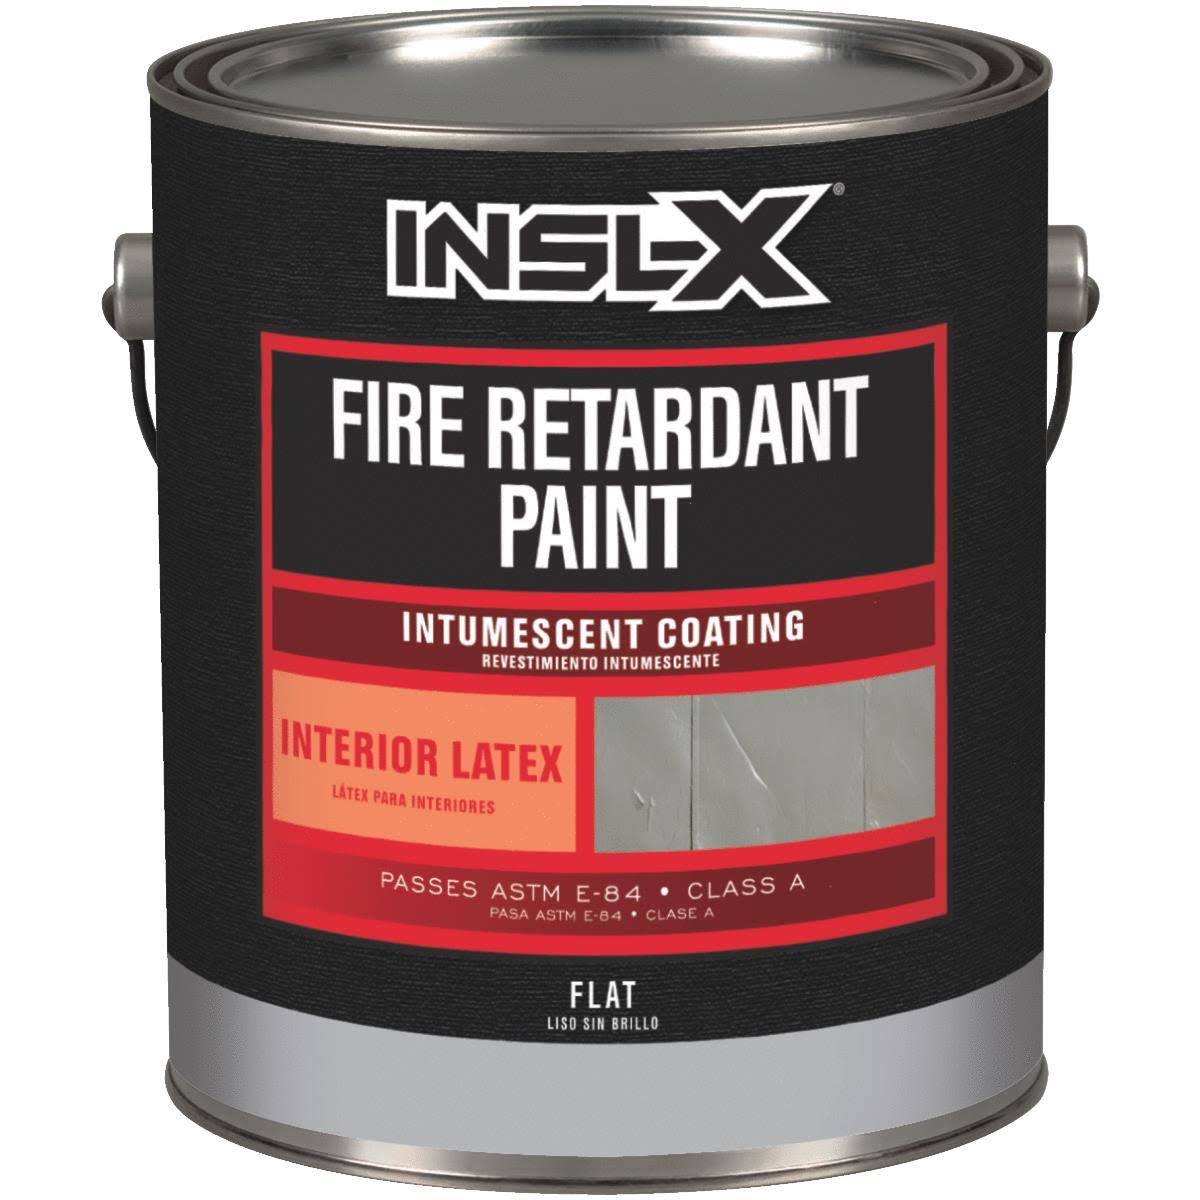 Insl-X Fire Retardant Interior Wall Paint 1 gal., White